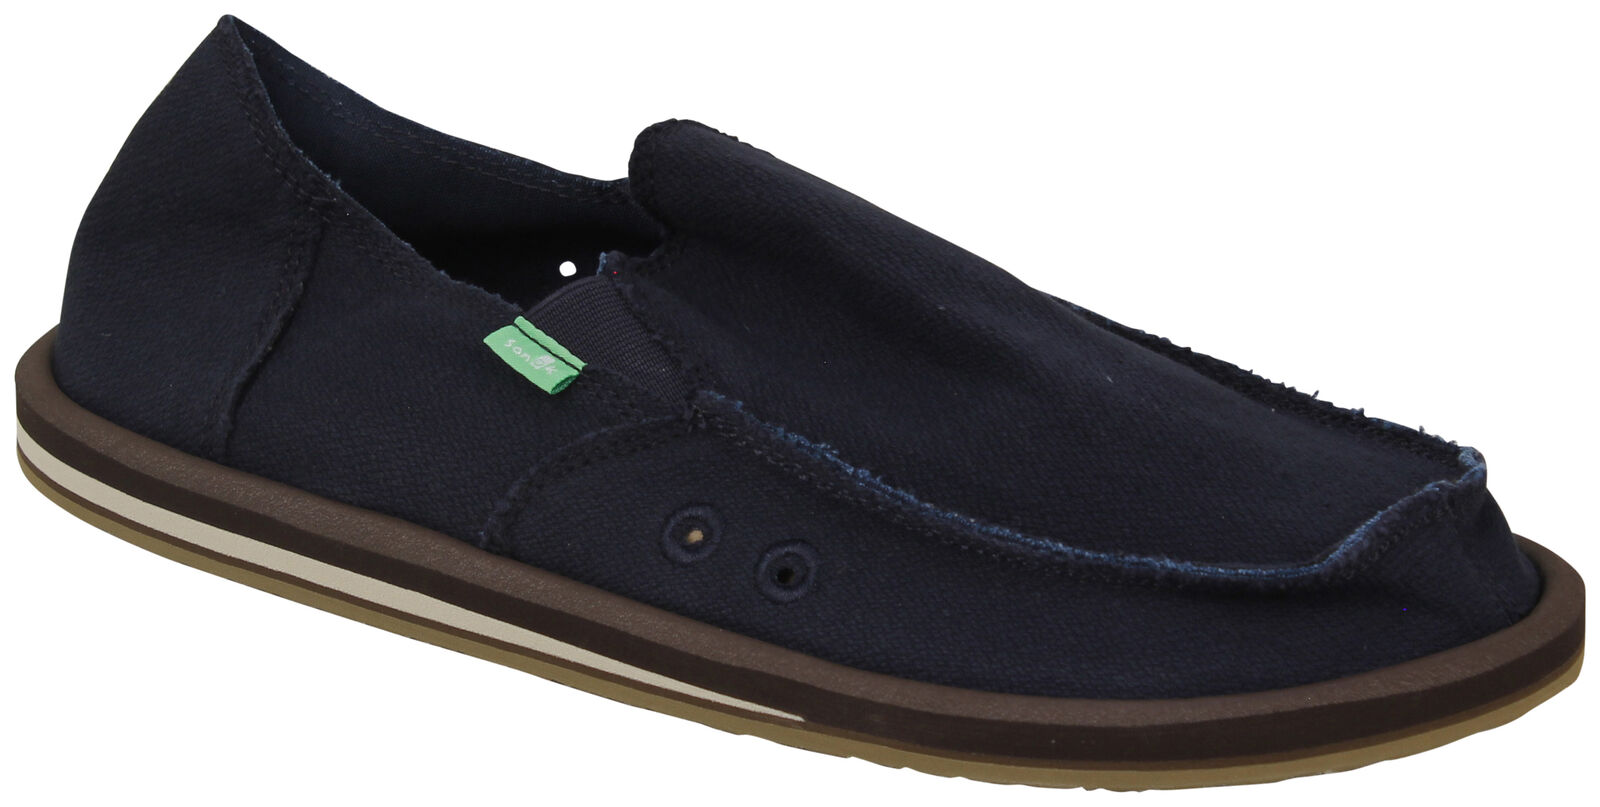 Sanuk Hemp Sidewalk Surfer - Navy - New